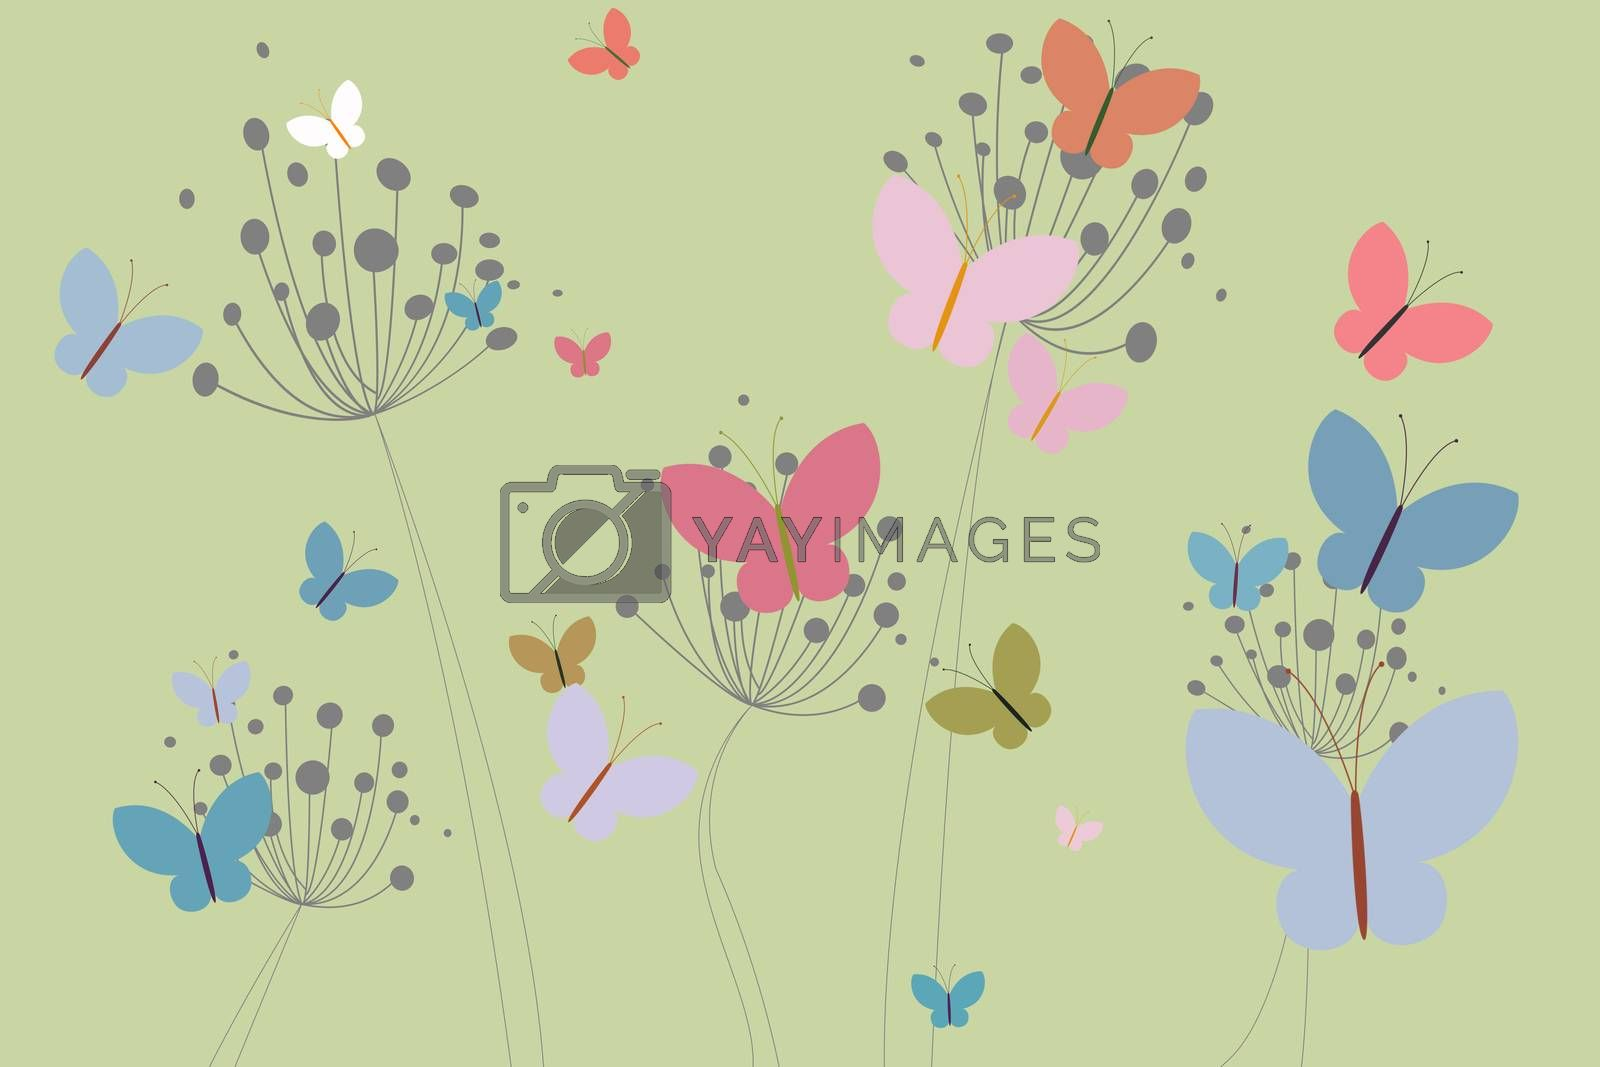 Royalty free image of Colourful butterflies and dandelions by Wavebreakmedia